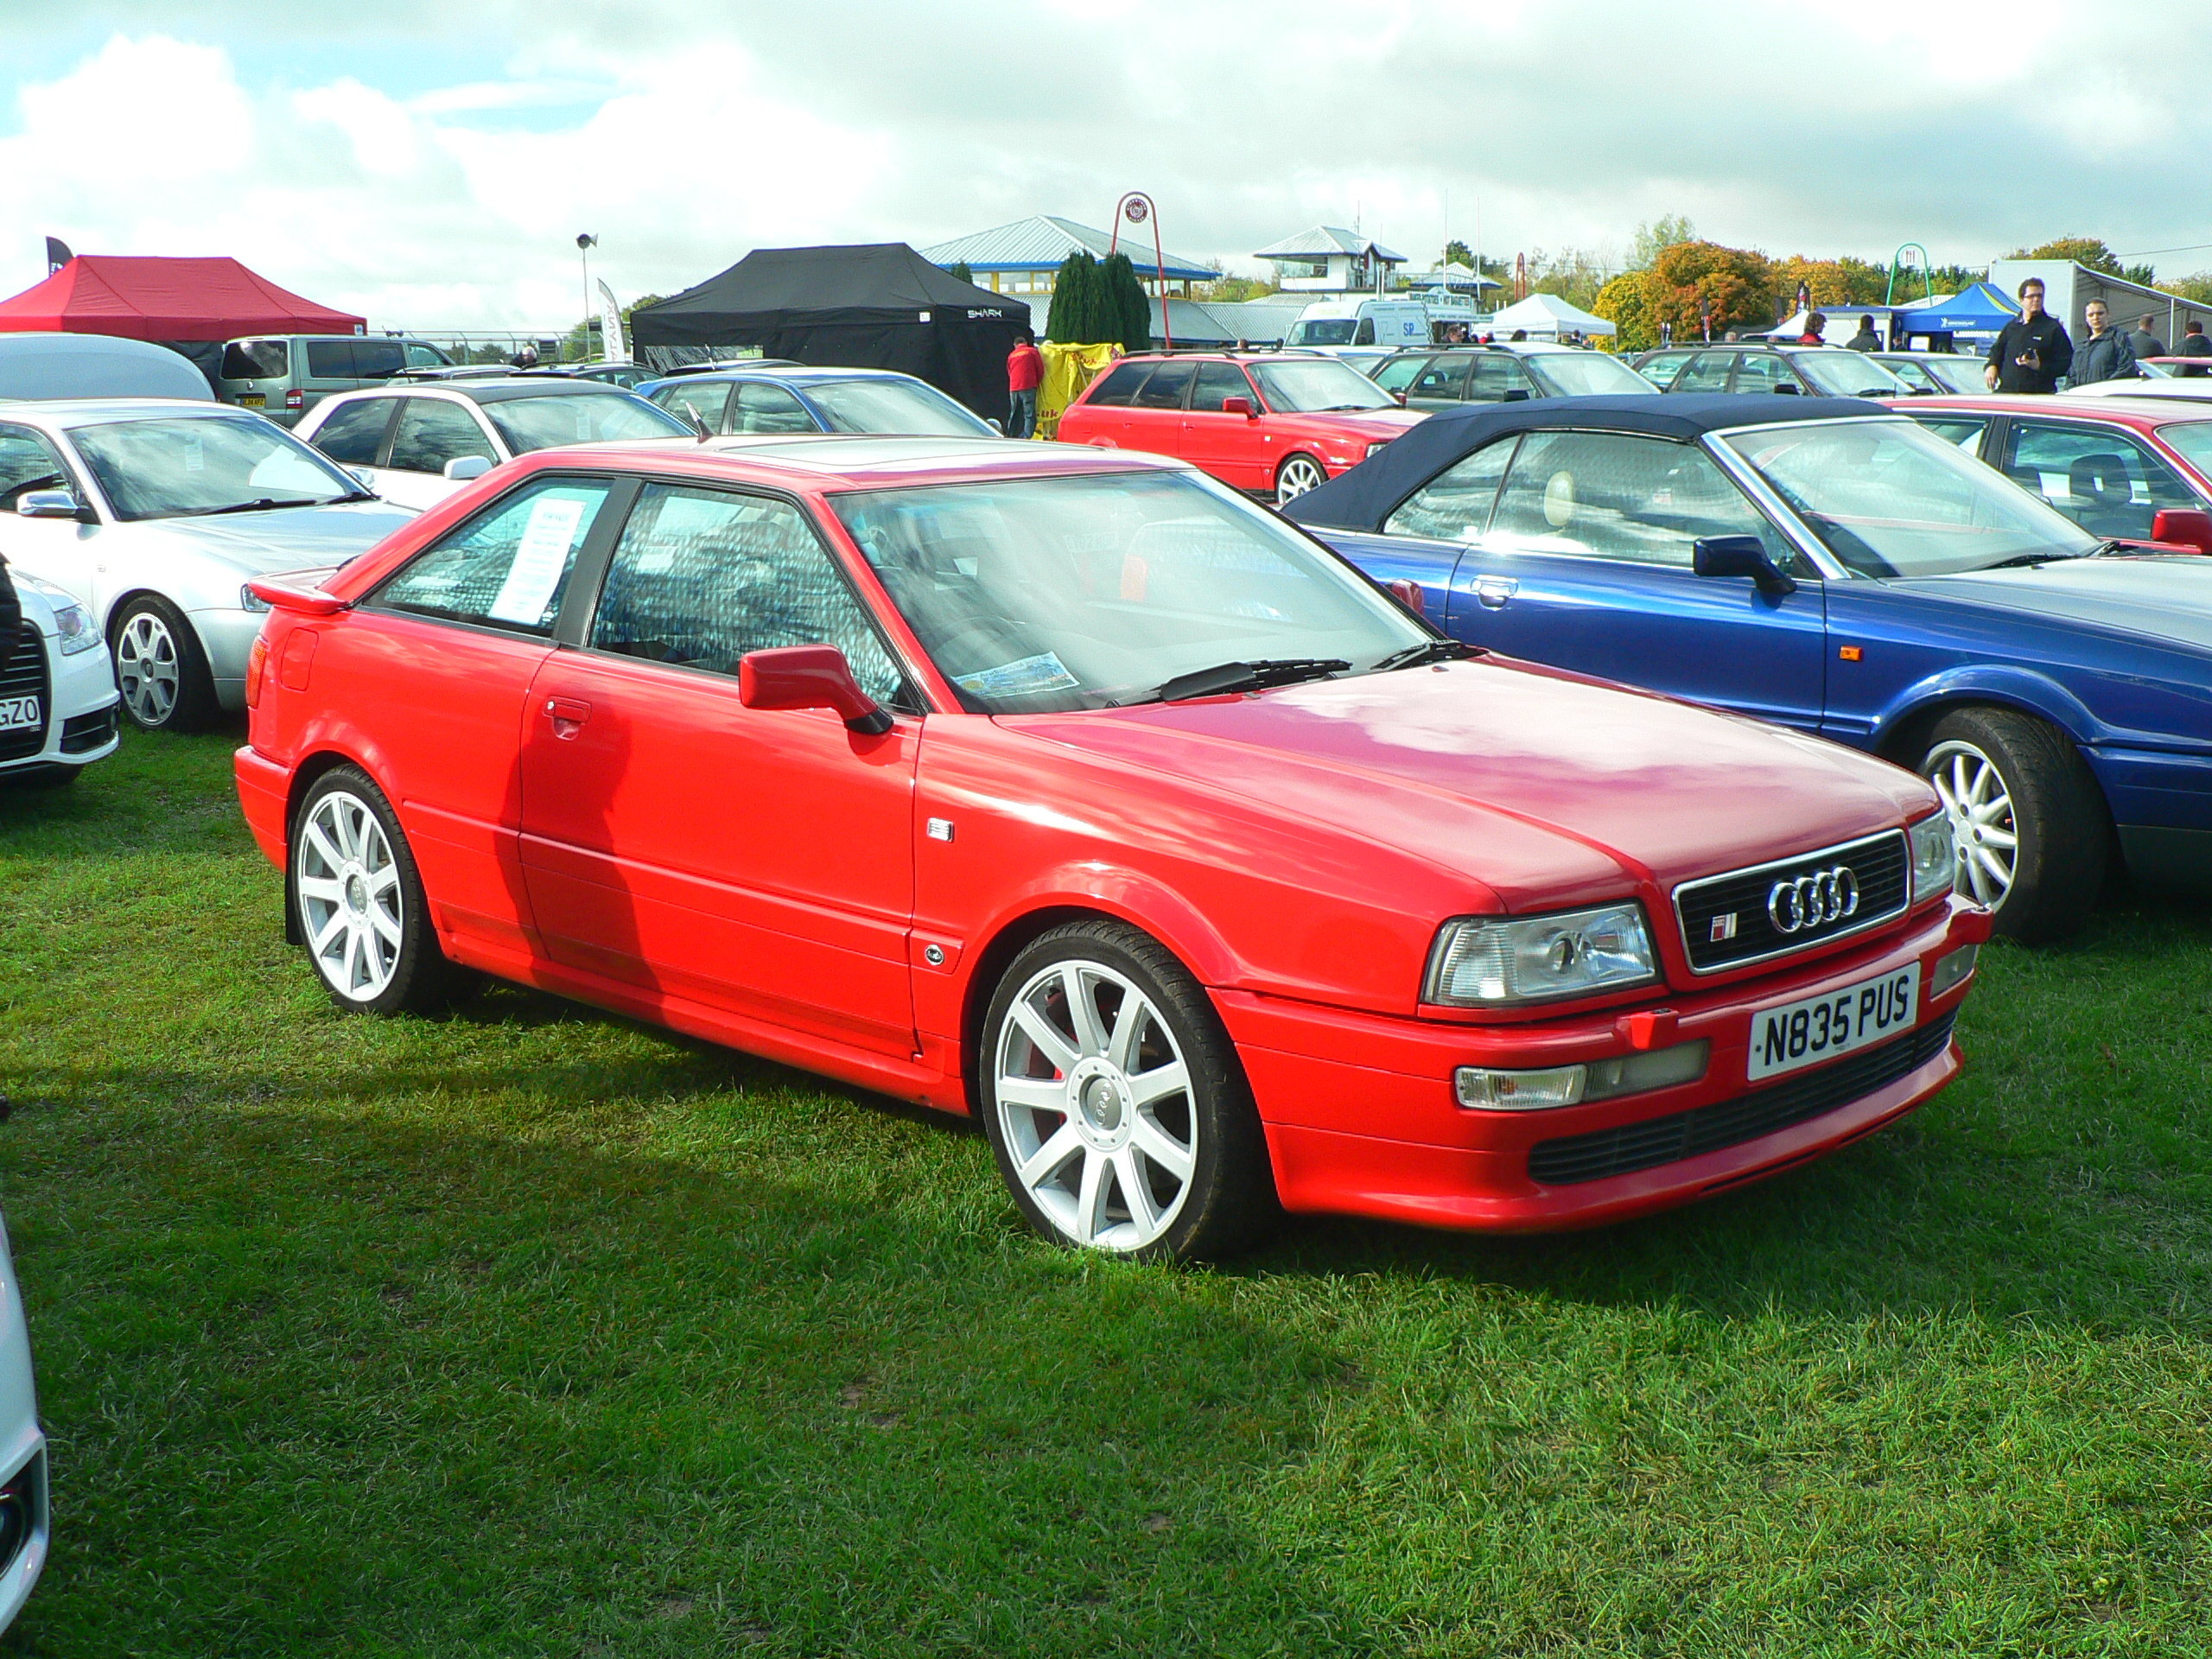 Audi Coupe S2, N835 PUS at Castle Combe | Flickr - Photo Sharing!